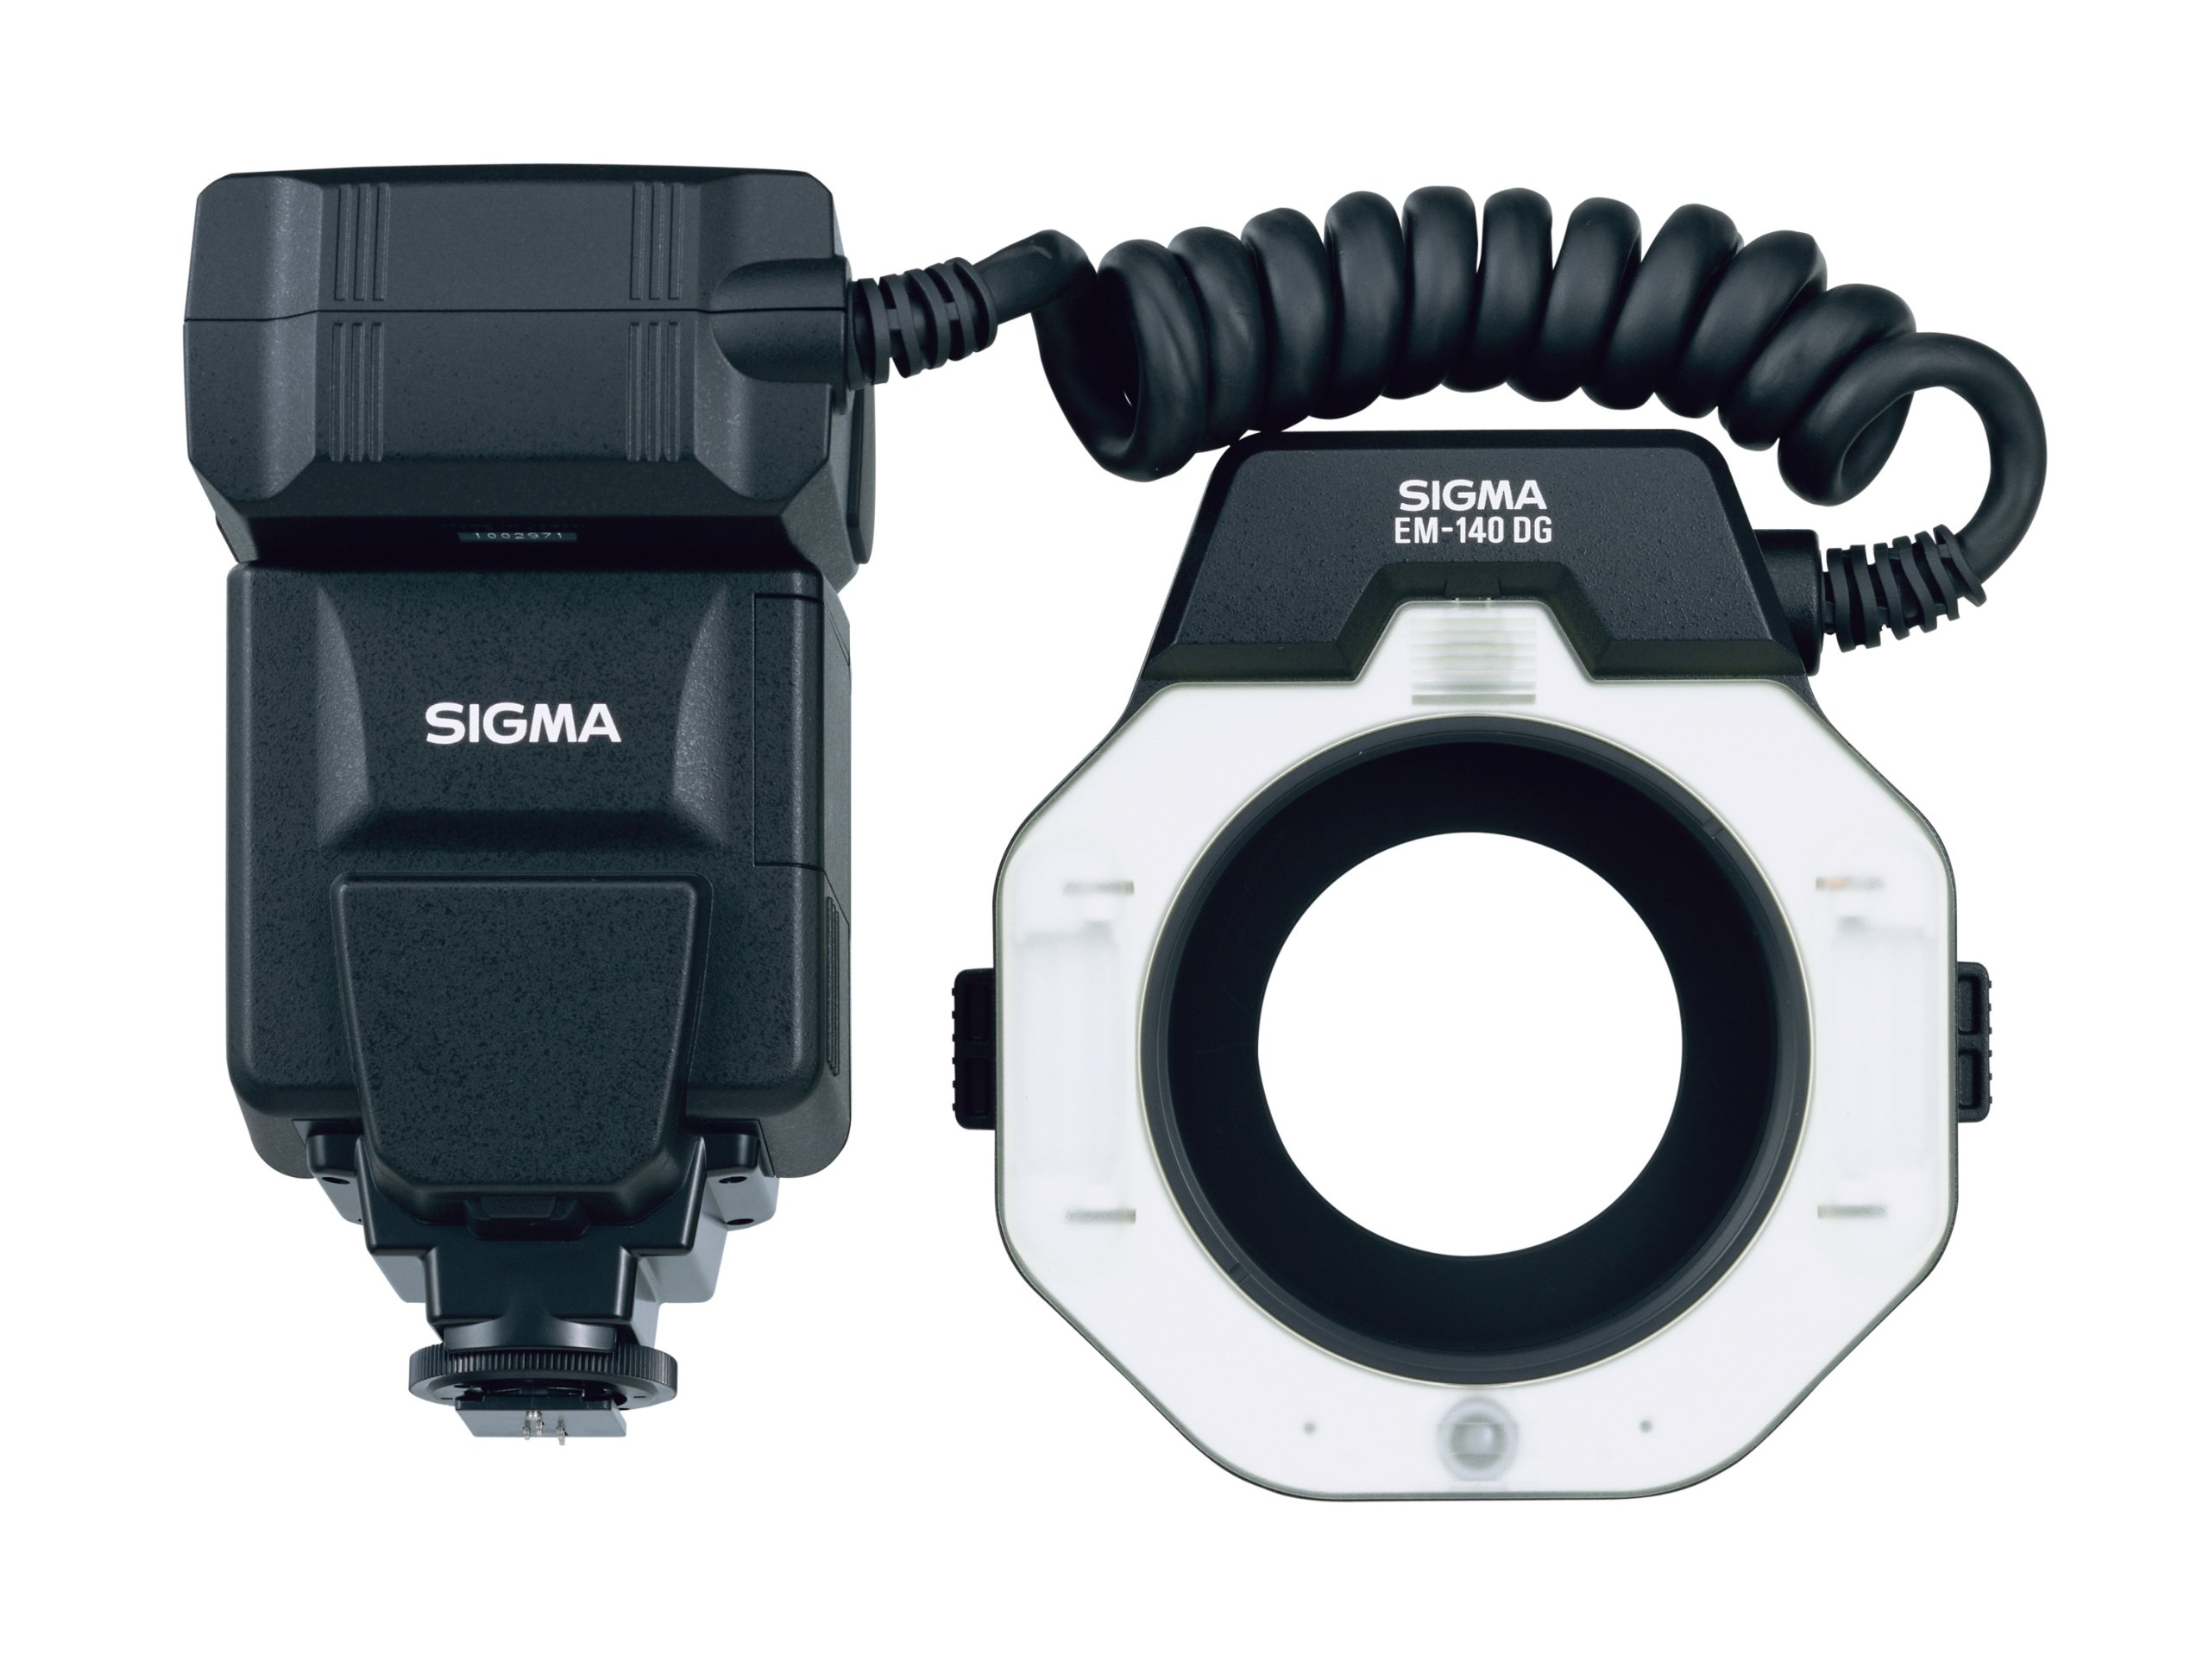 Sigma EM-140 DG Macro Ring Flash for Canon SLR Cameras by Sigma